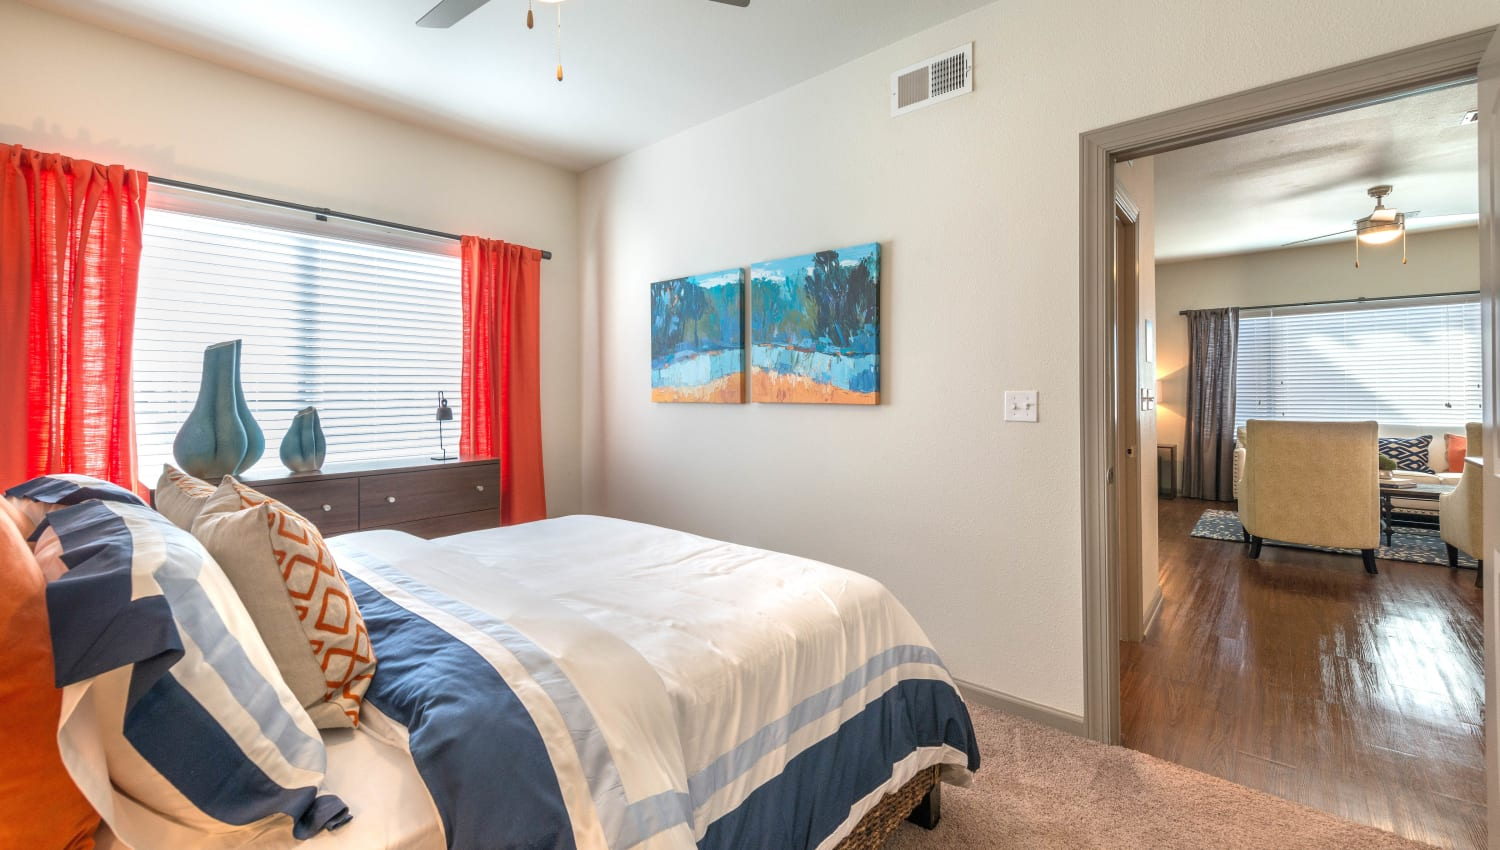 Well-furnished master bedroom in a model apartment at Olympus Waterford in Keller, Texas